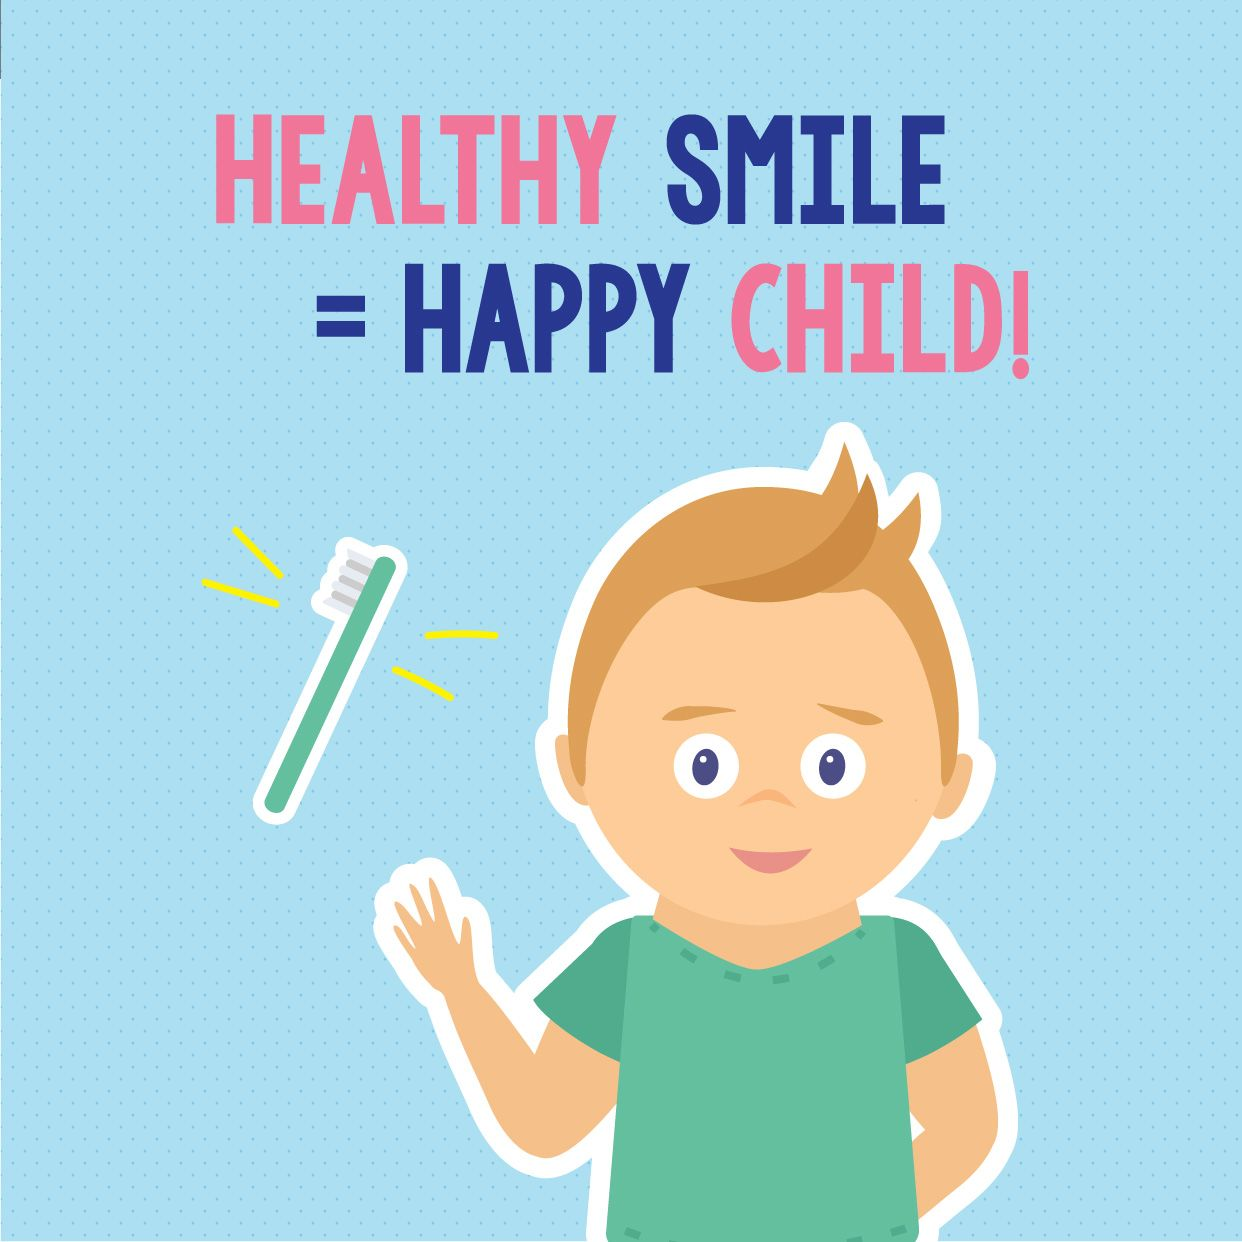 HELP YOUR CHILD have a healthy smile! Even cavities in